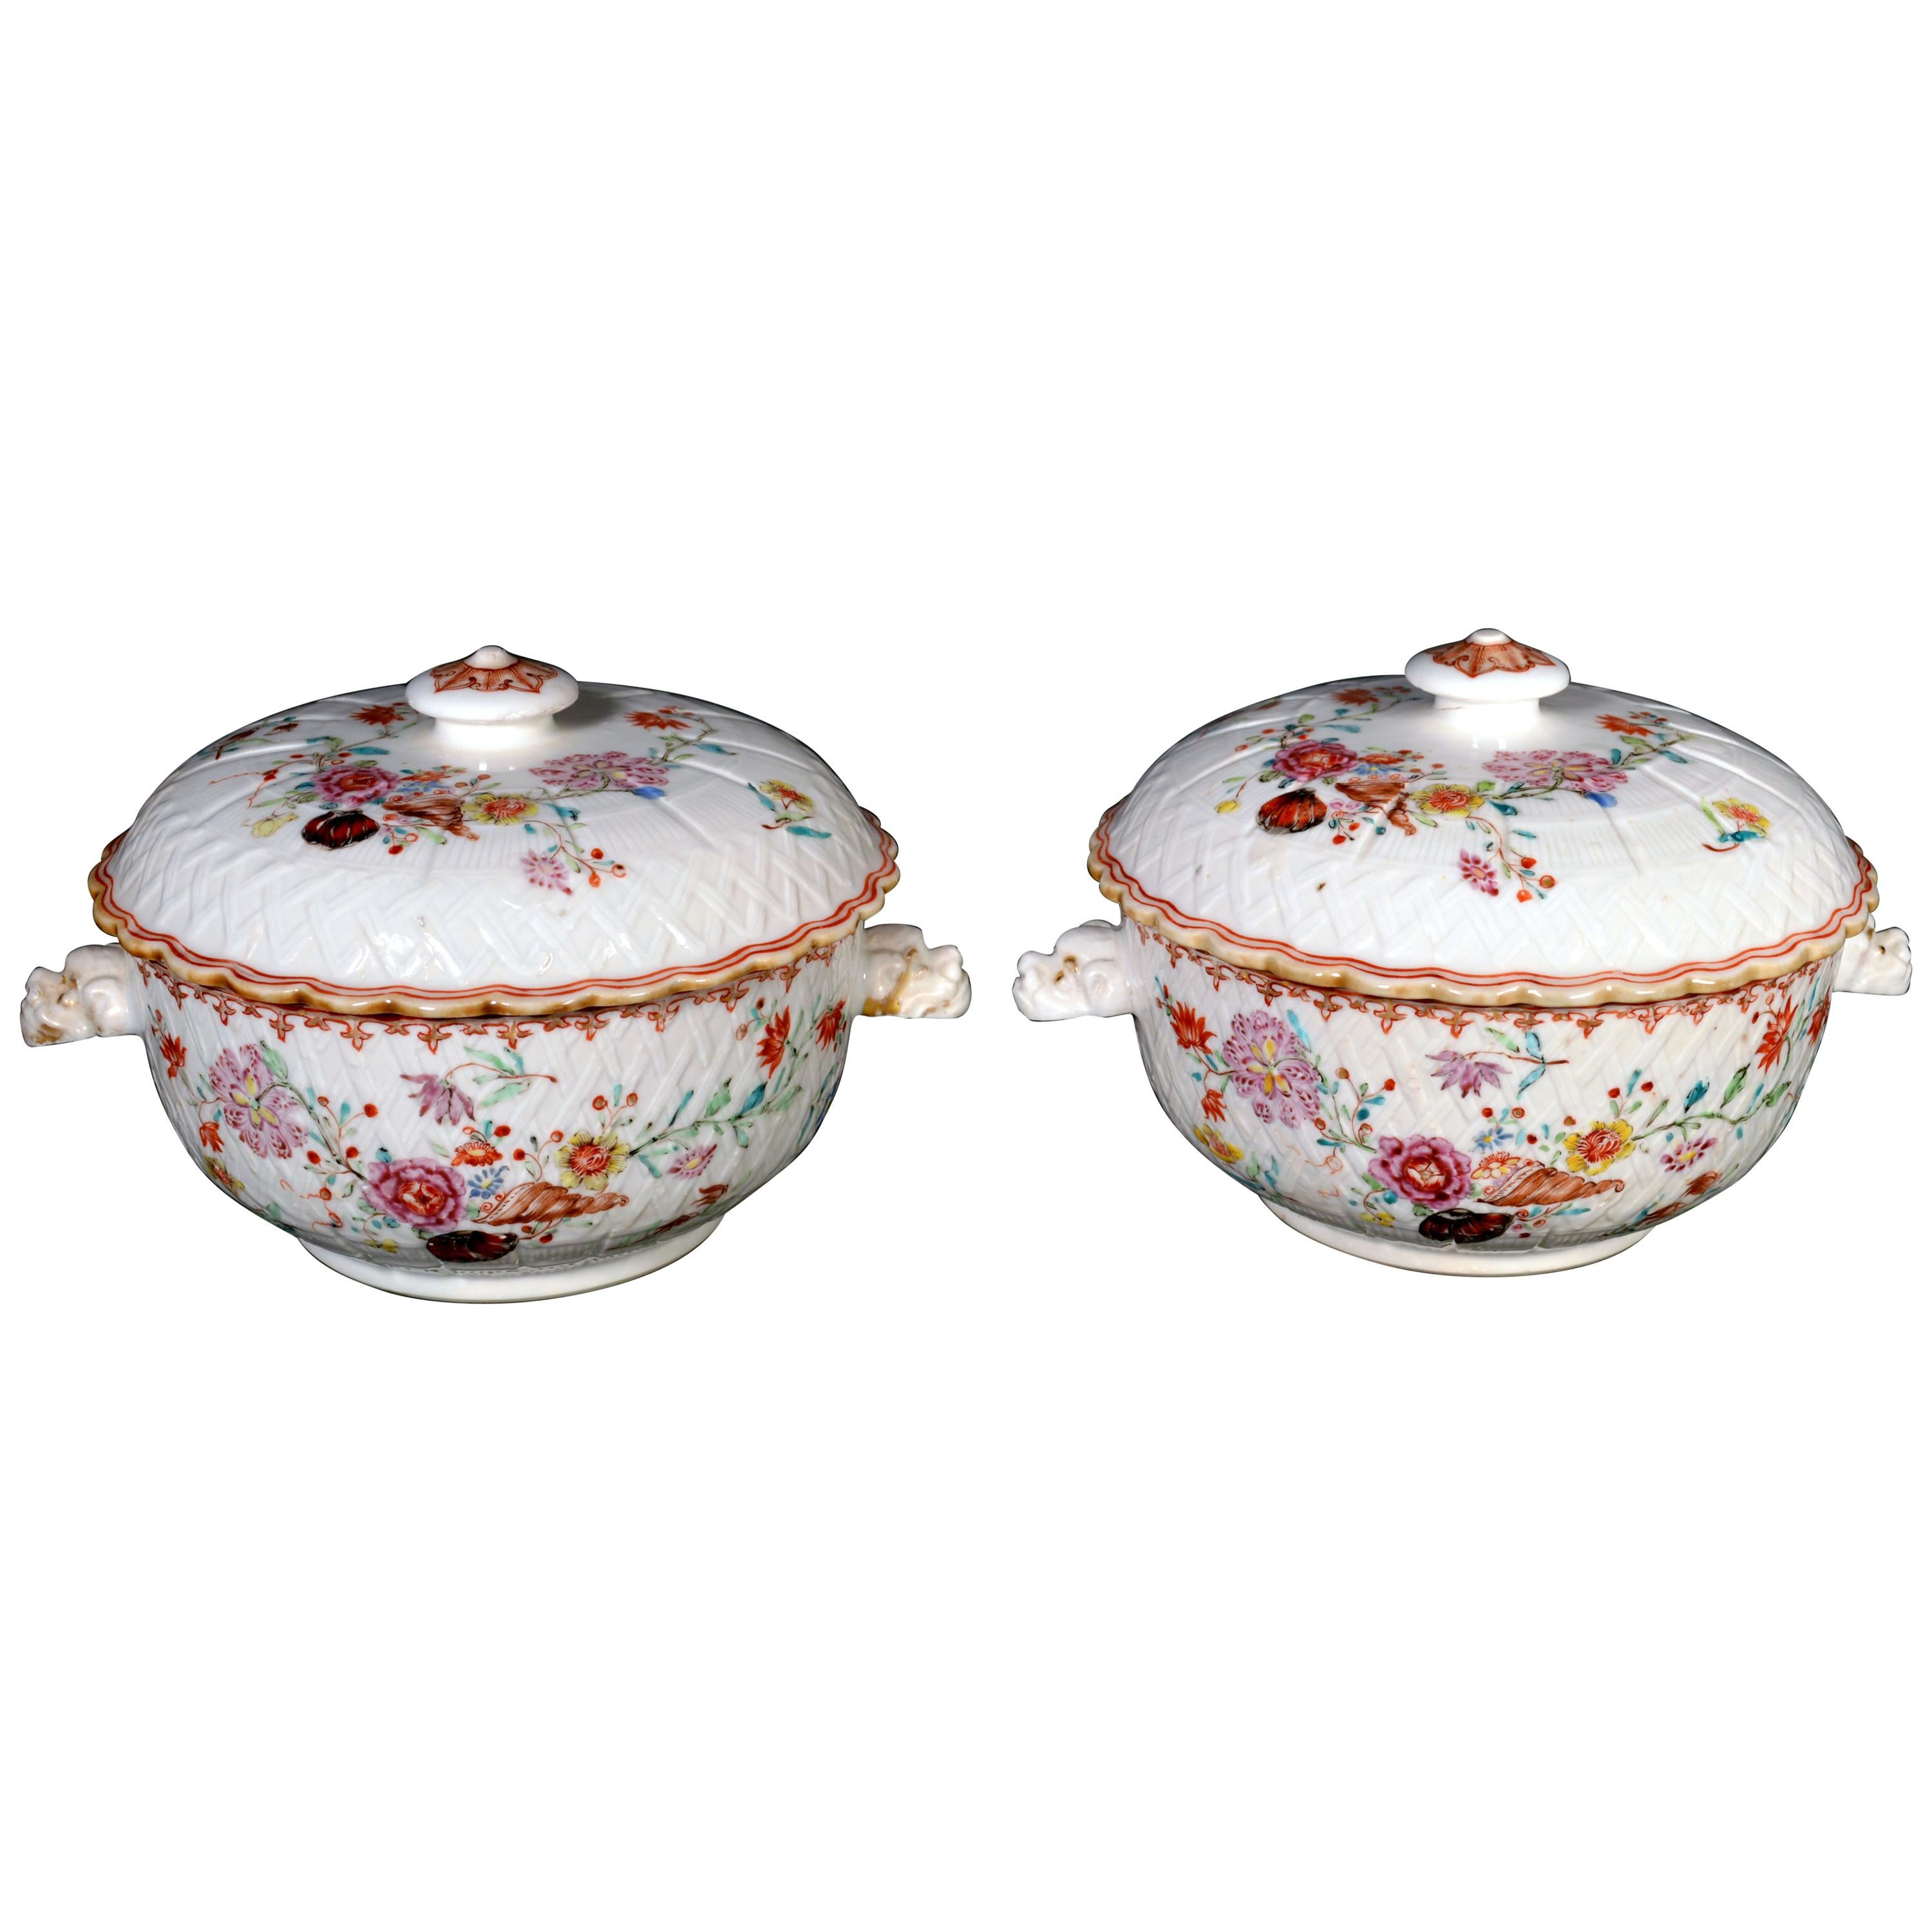 Chinese Export Porcelain Famille Rose Basket Weave-Ground Écuelles and Covers